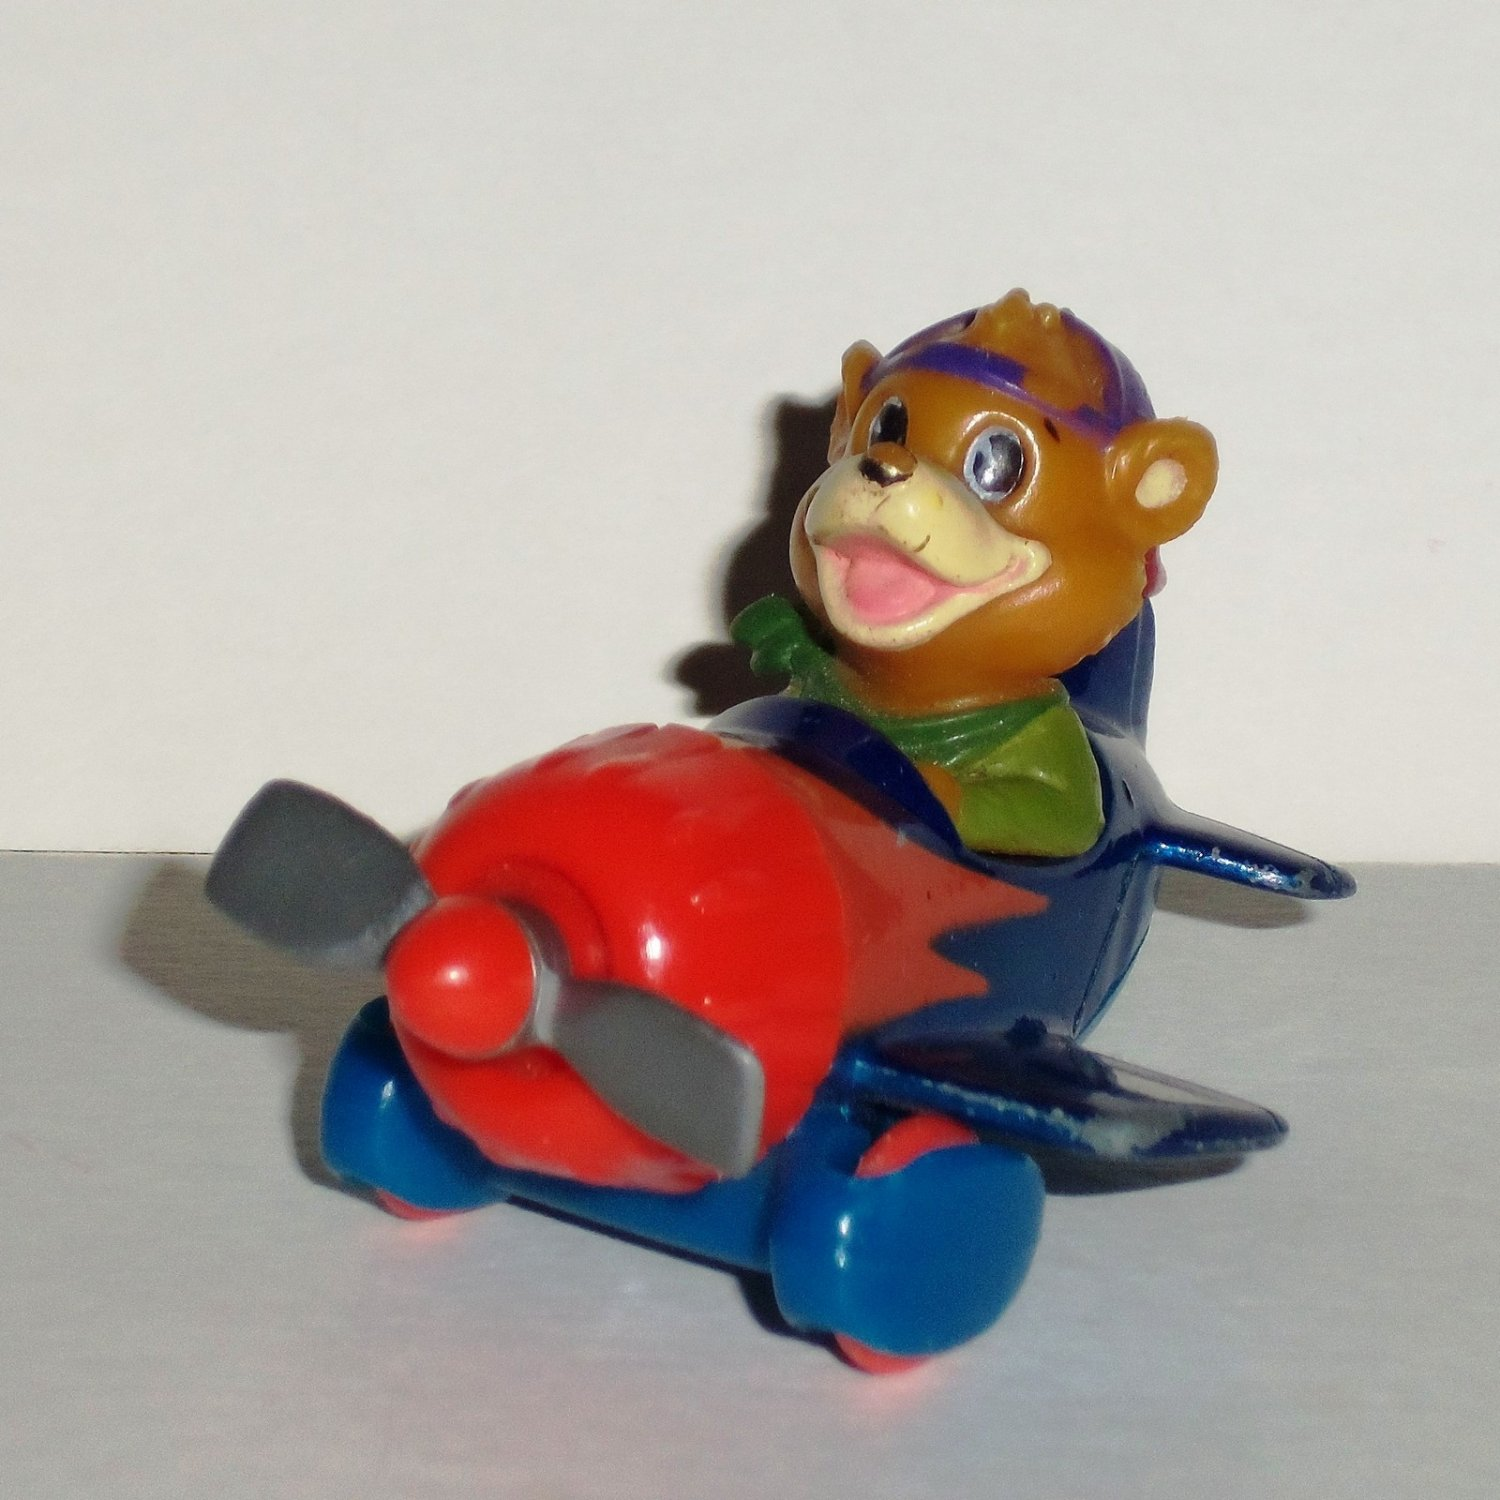 McDonald's 1990 Disney's TaleSpin Kit's Racing Plane Happy Meal Toy Loose Used